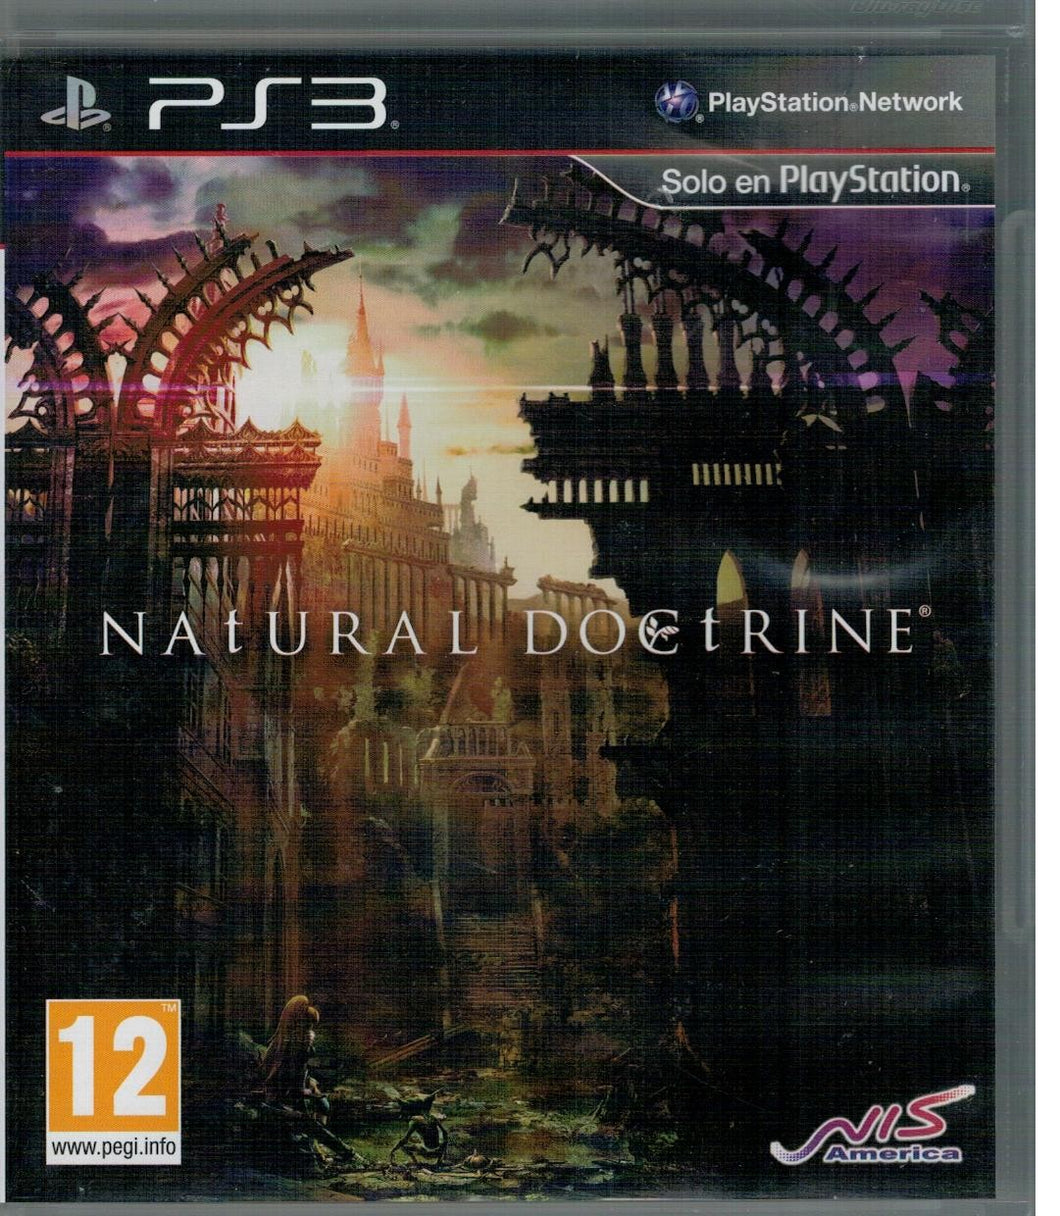 NAtURAL DOCtRINE (PS3)